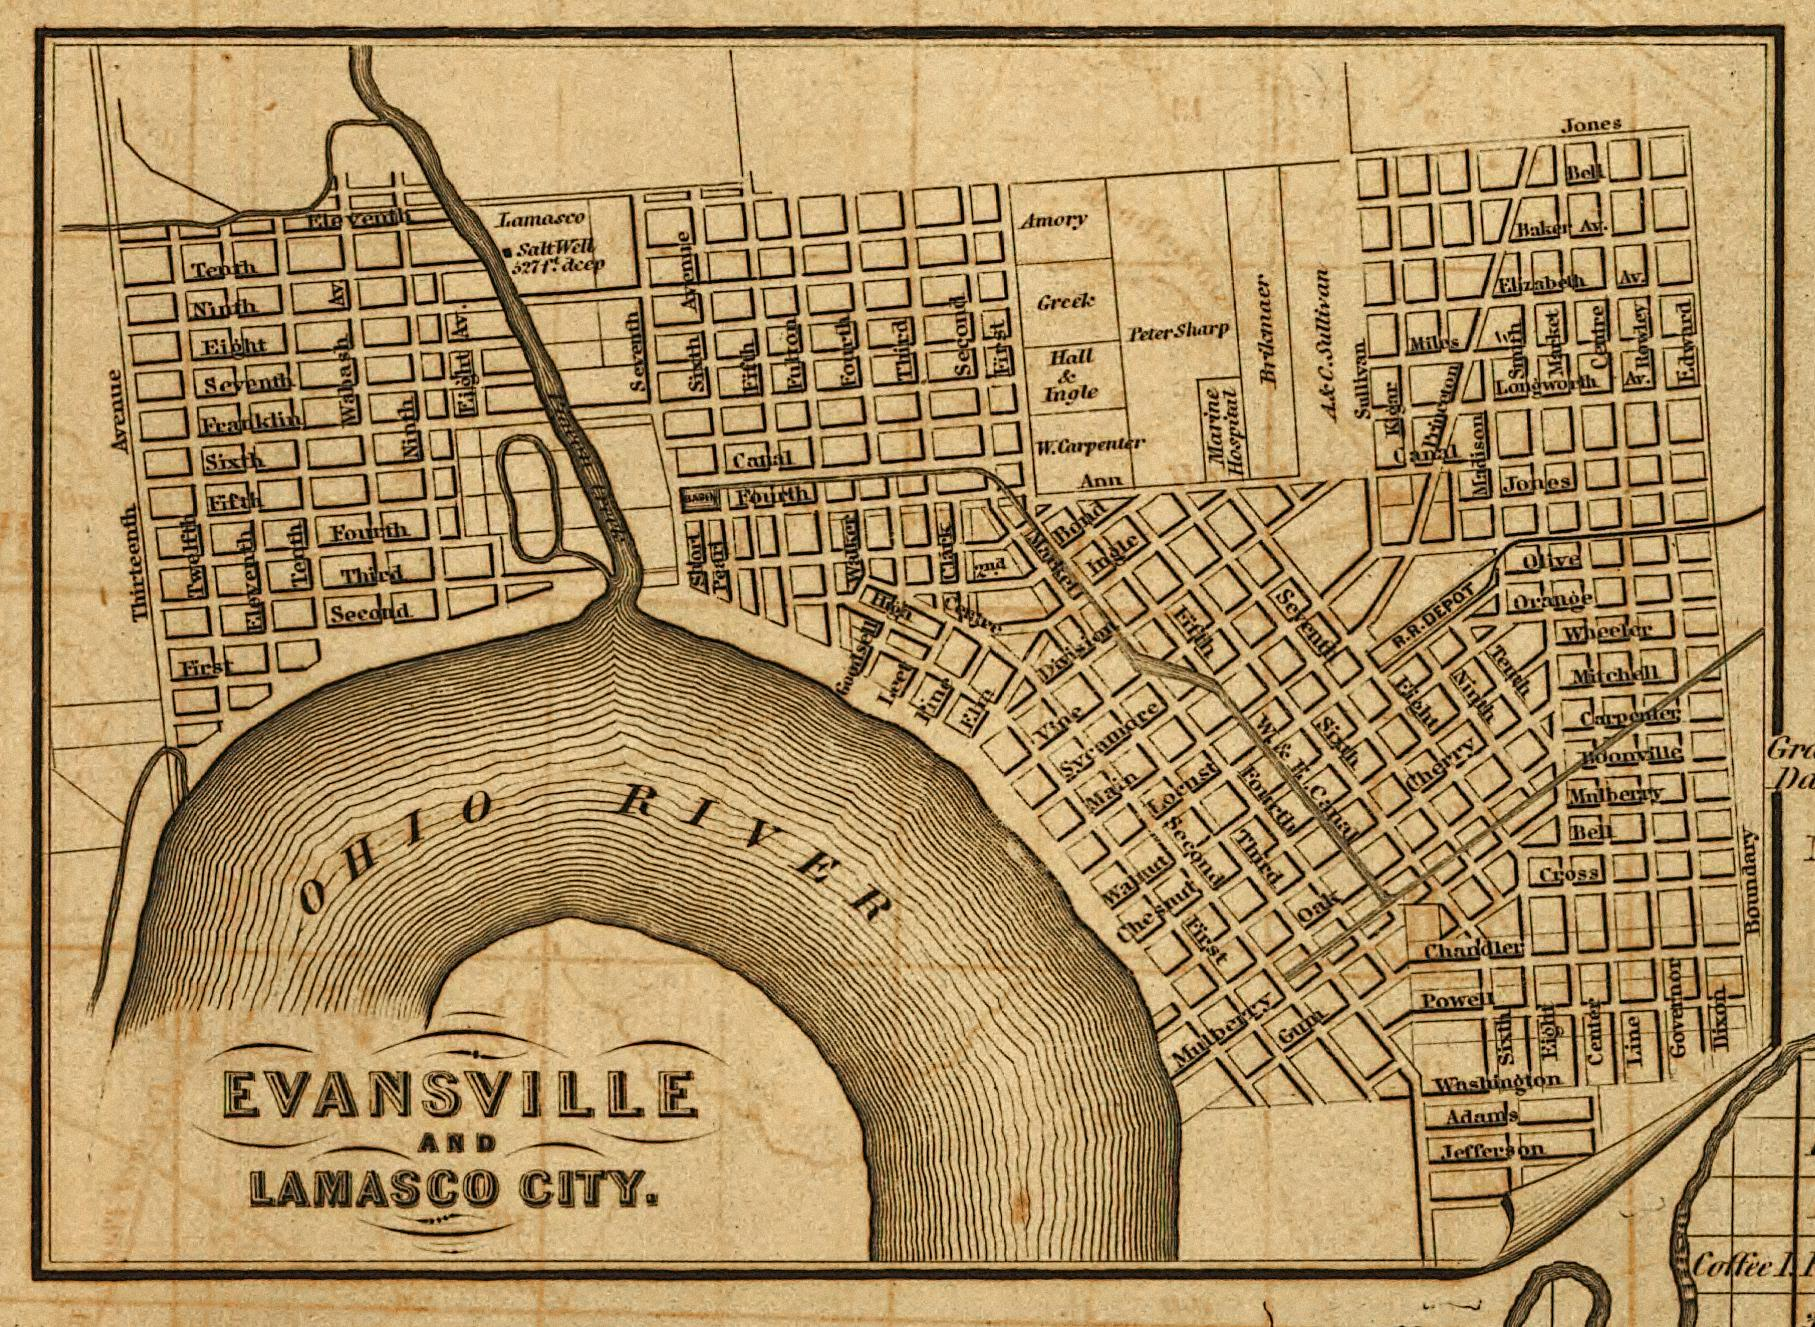 Historic Evansville - Maps on indiana map with latitude and longitude, indiana by county, indiana climate graph, indiana county map ohio, wyoming map showing counties, indiana county map online, indiana map with marion, indiana county map printable, indiana shipshewana map shopping, indiana territory $1 800 map, indiana underground coal mine maps, louisville map ky counties, indianapolis indiana counties, indiana road map, indiana counties by number, indiana counties names, indiana county population growth, map showing indiana counties, indianapolis area map counties, indiana map townships,